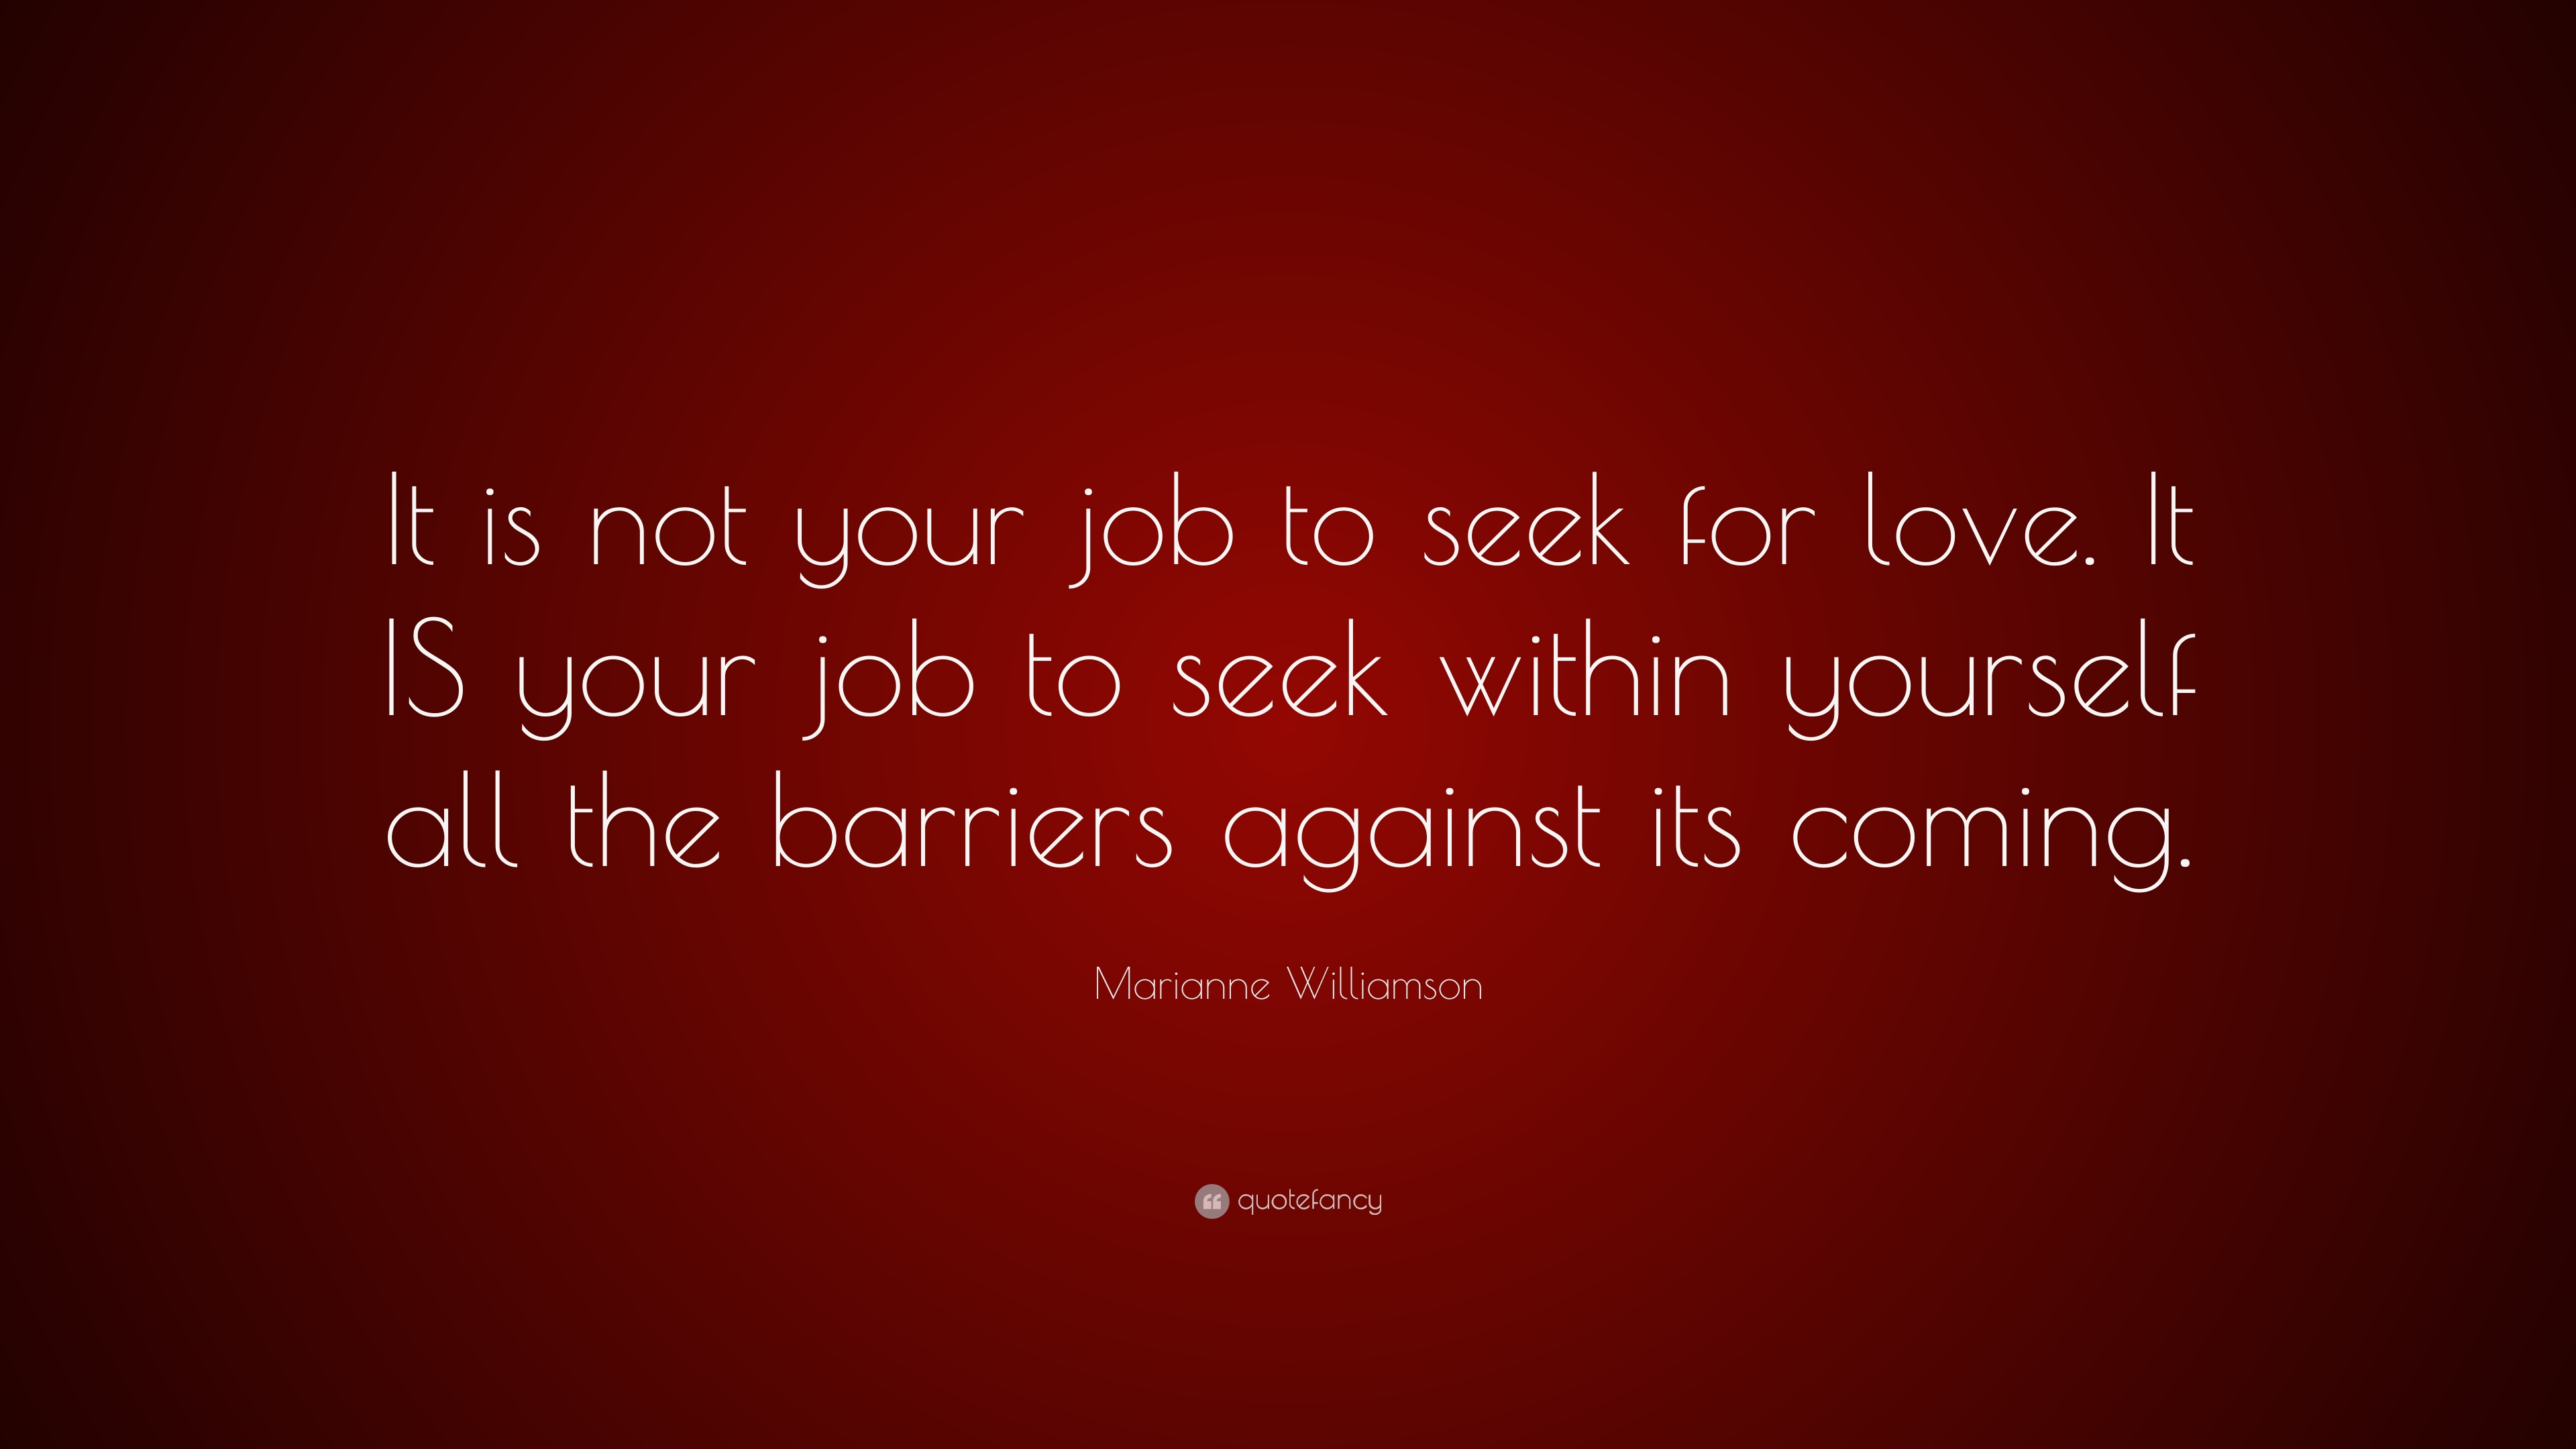 Exceptionnel Marianne Williamson Quote: U201cIt Is Not Your Job To Seek For Love. It